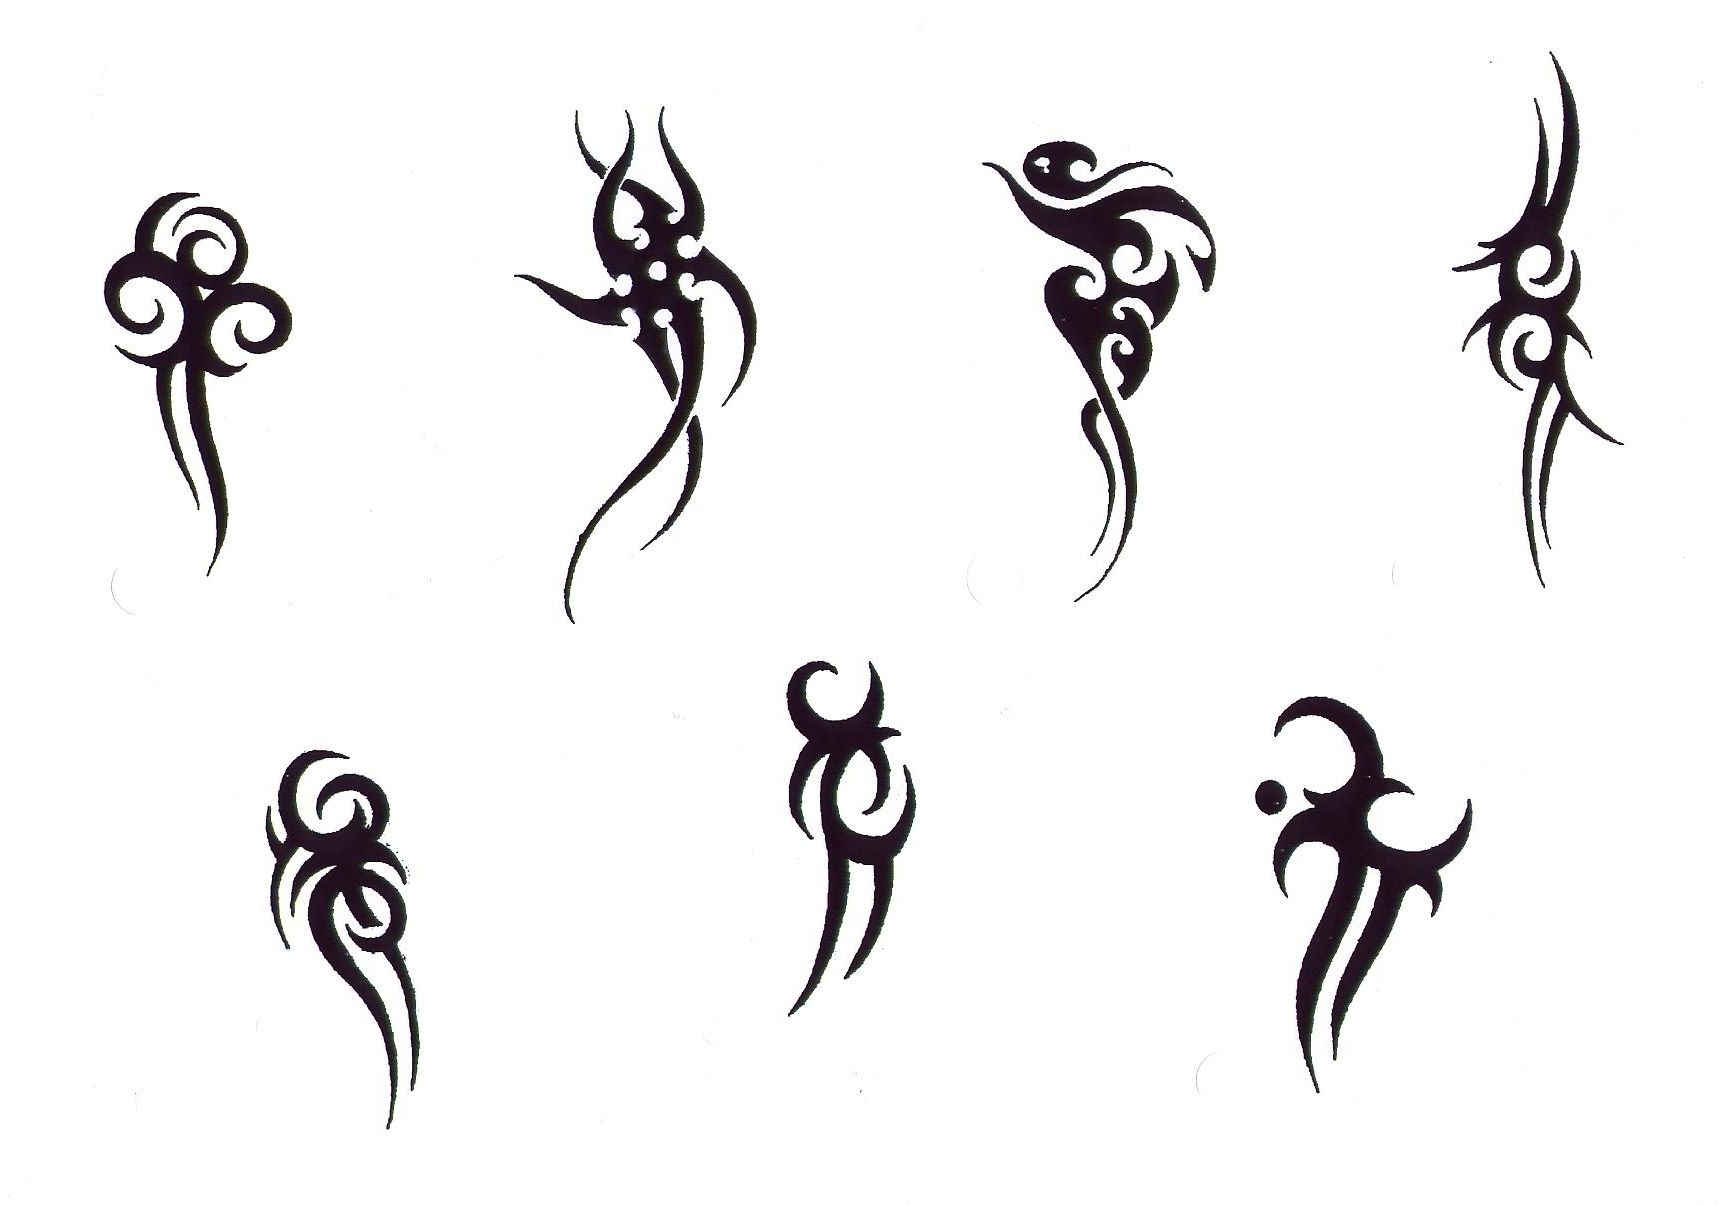 Small Tribal Tattoos For Men Tribal Tattoo Men On Pinterest Tribal Small Tribal Tattoos Simple Tattoo Designs Tribal Tattoos